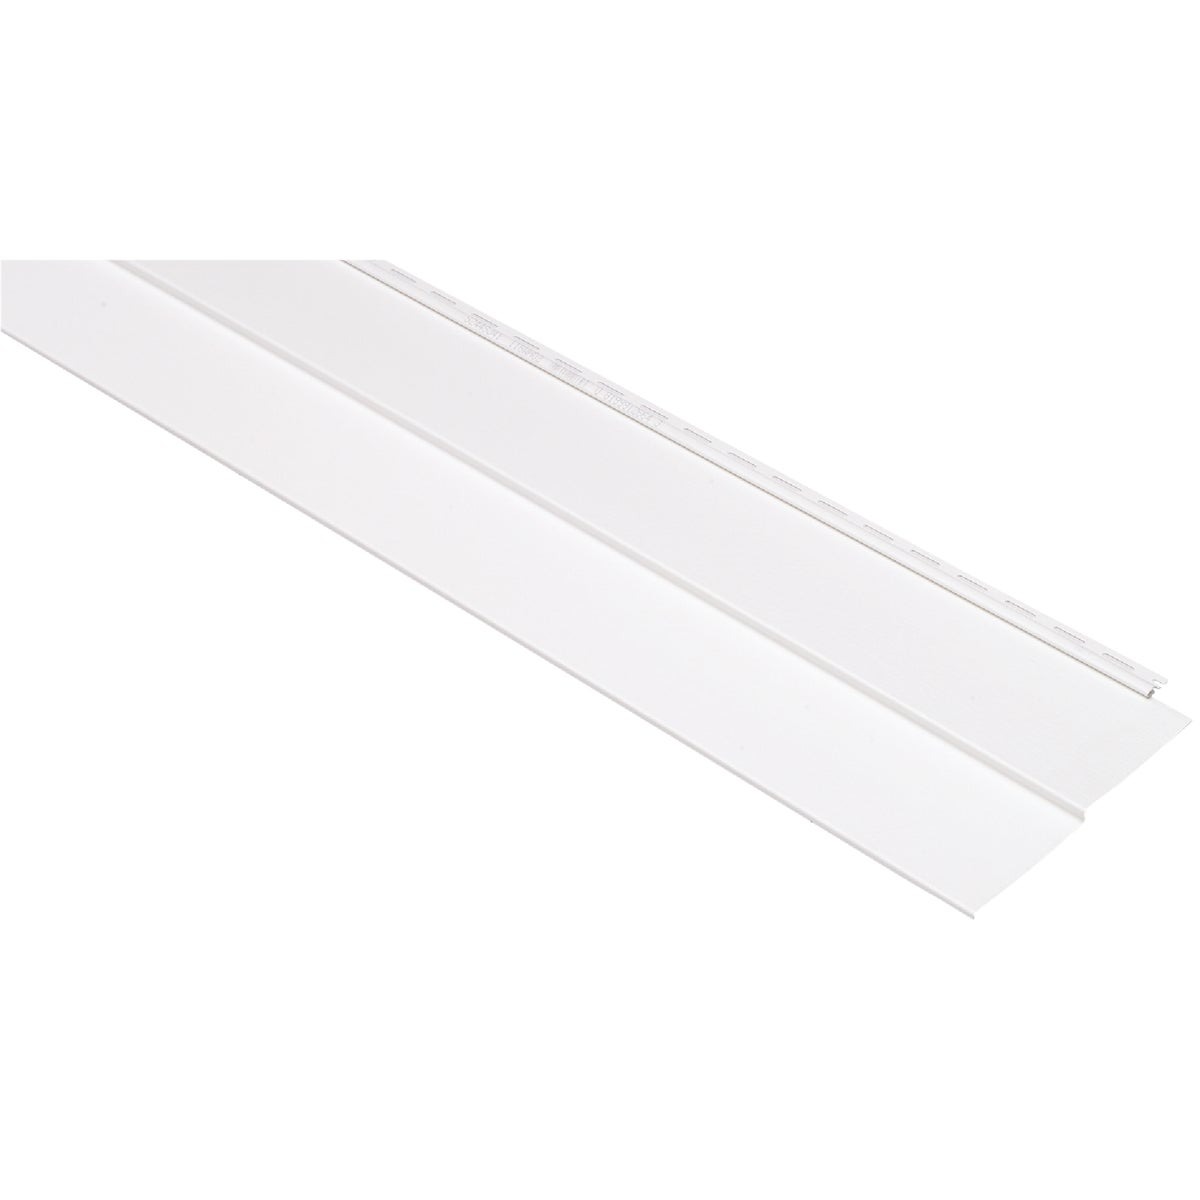 D5DL WHT SR VINYL SIDING - 259651 by Bluelinx